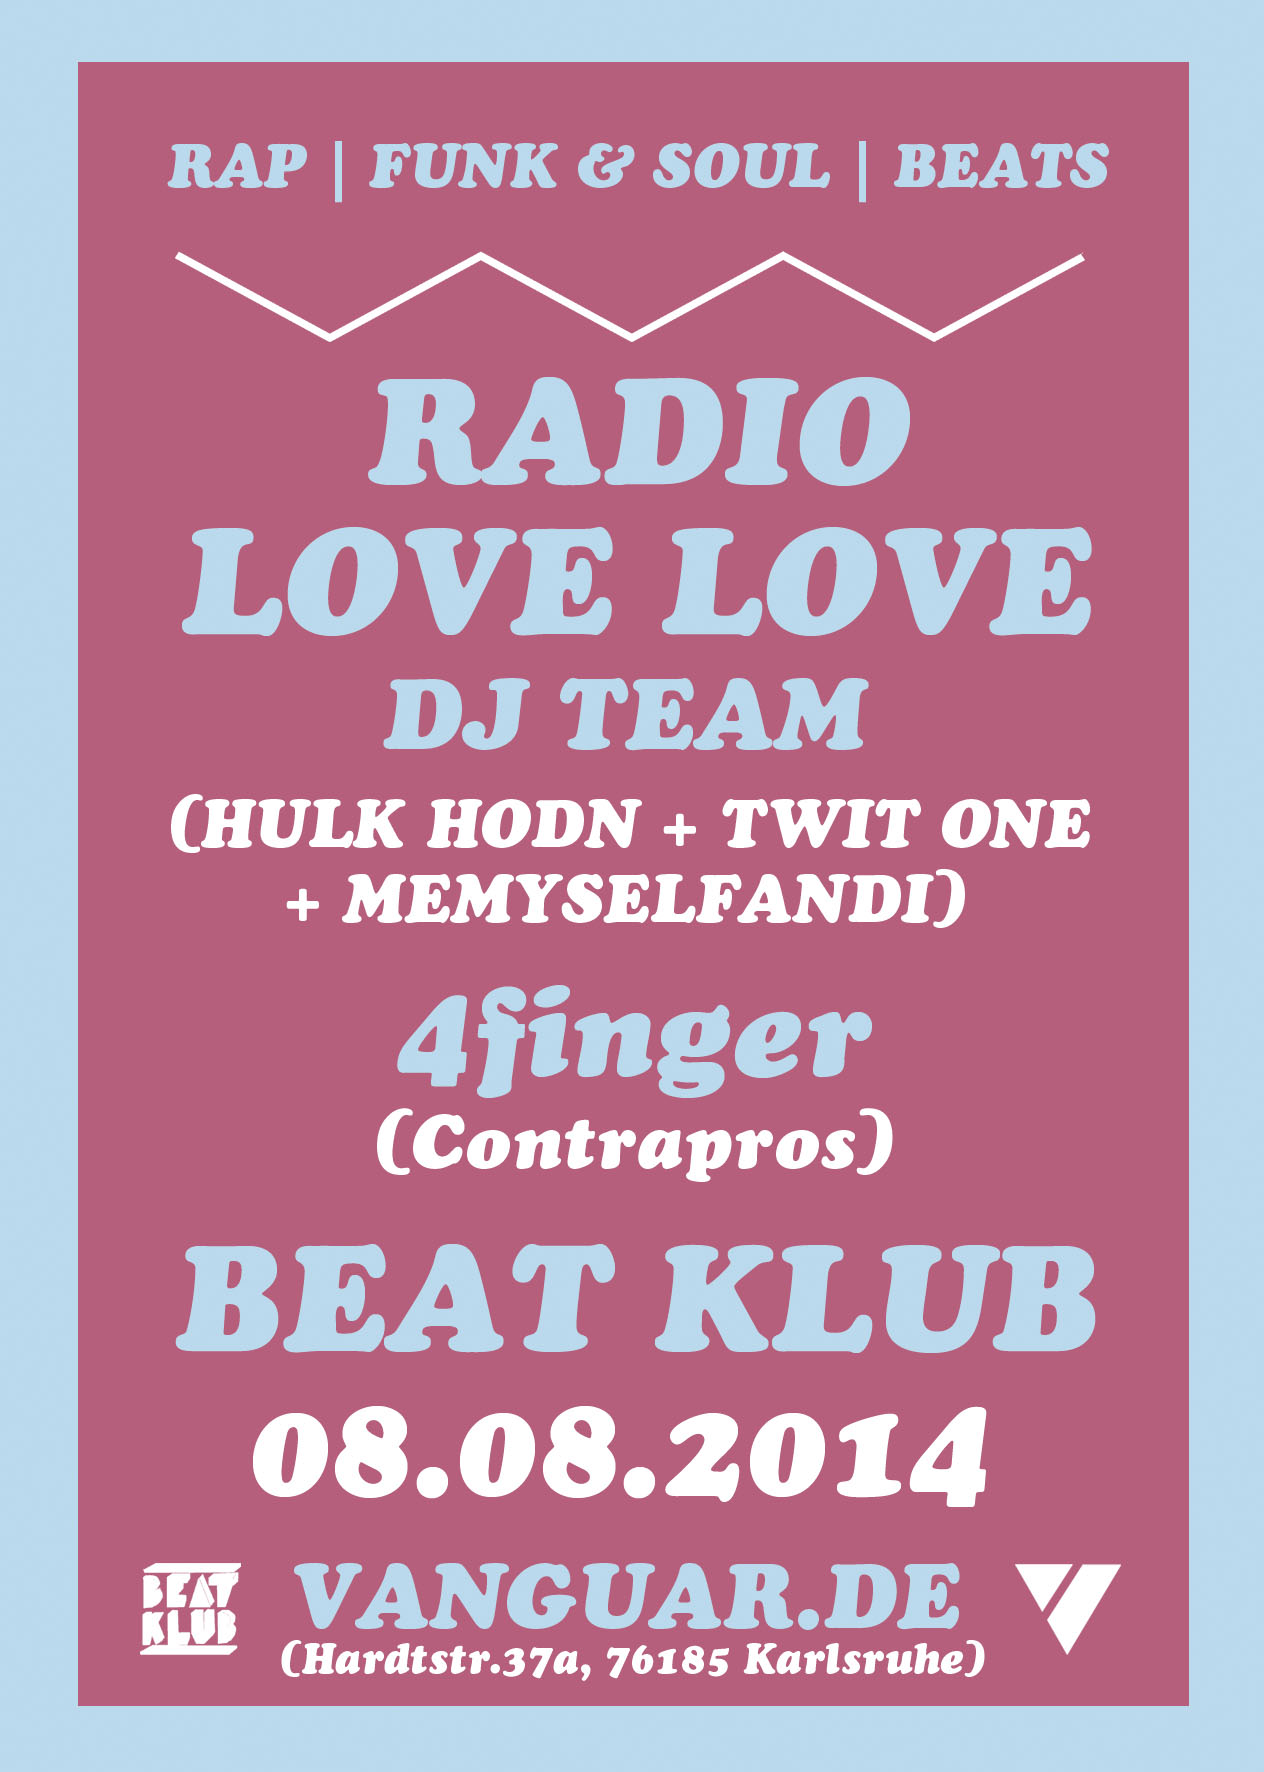 08.08.2014 | BEAT KLUB mit RADIO LOVE LOVE DJ Team | Summer Closing Party